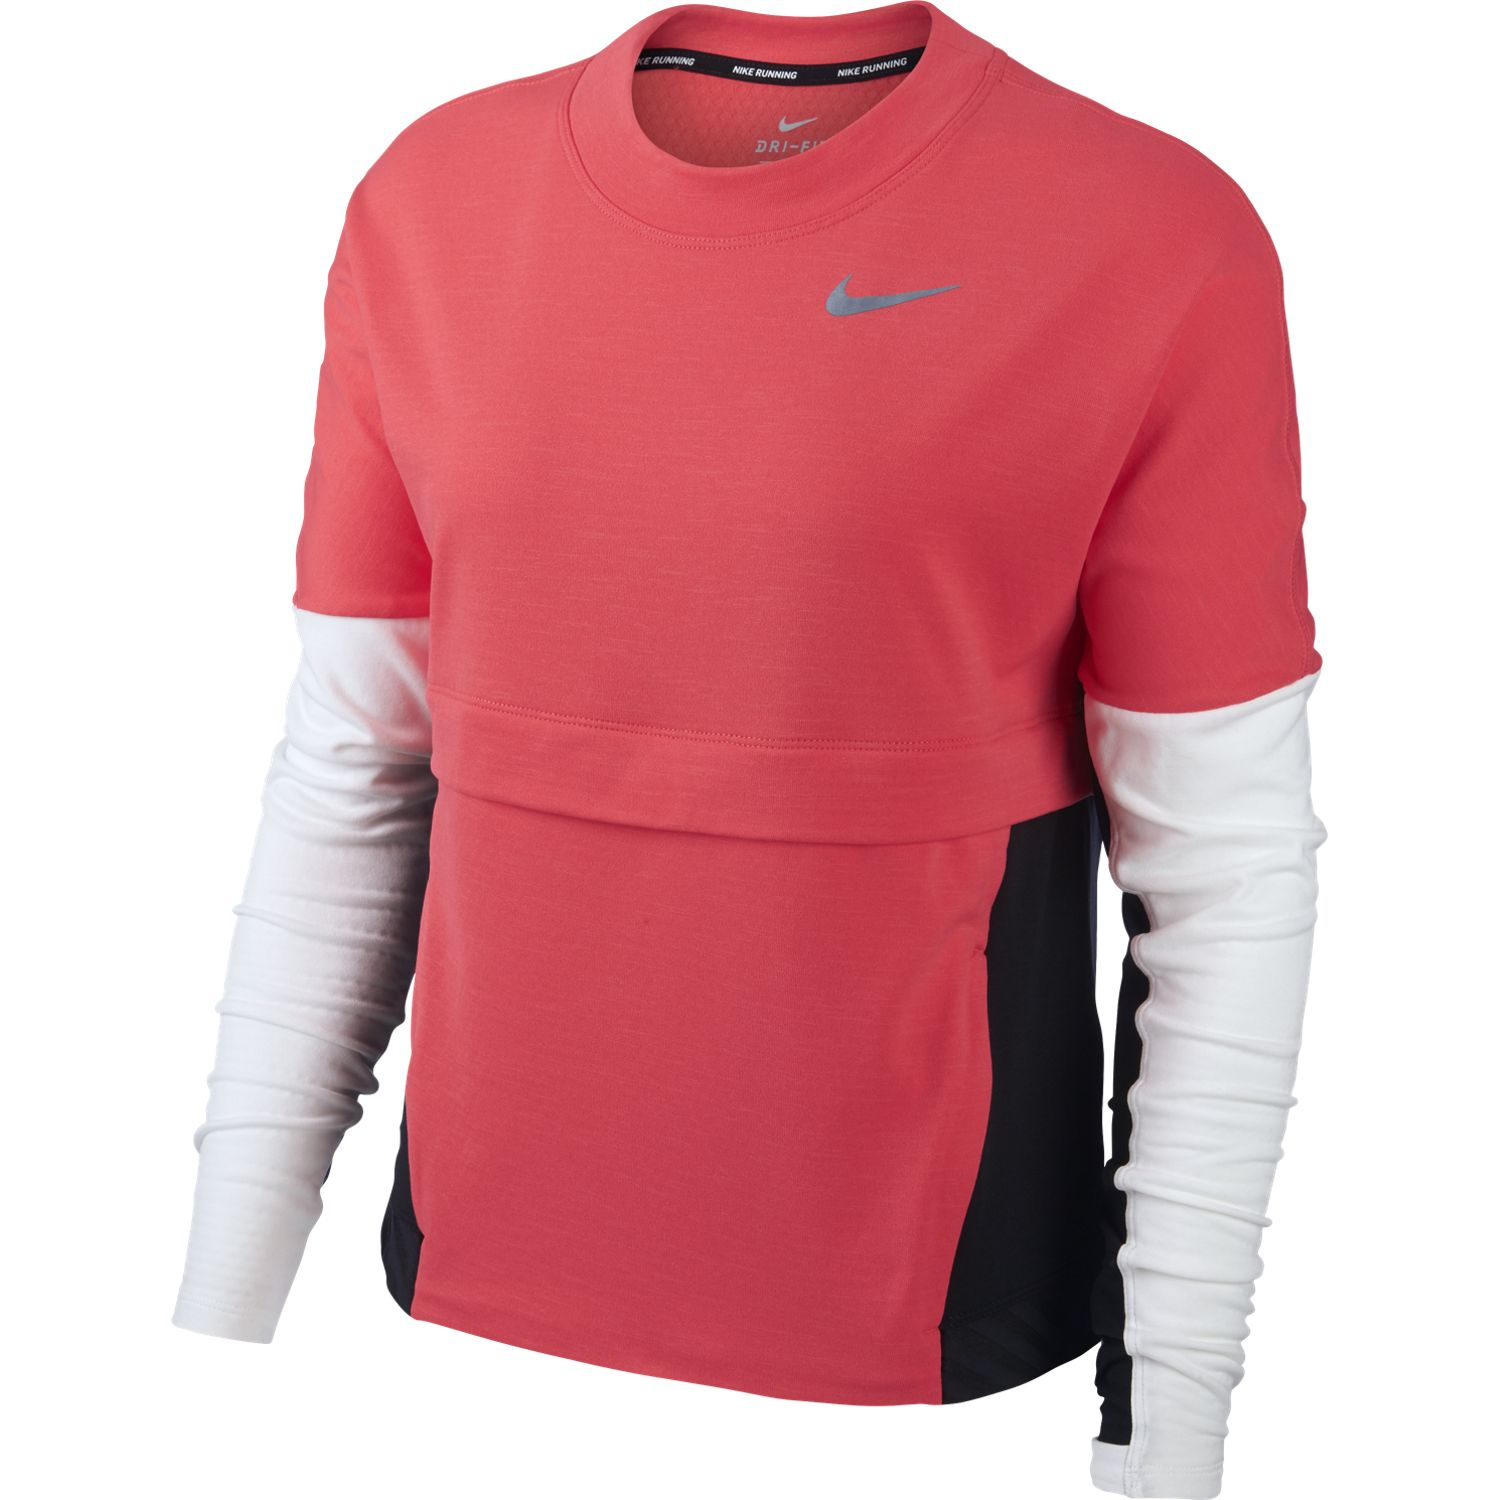 NIKE THERMA SPHERE DRI-FIT